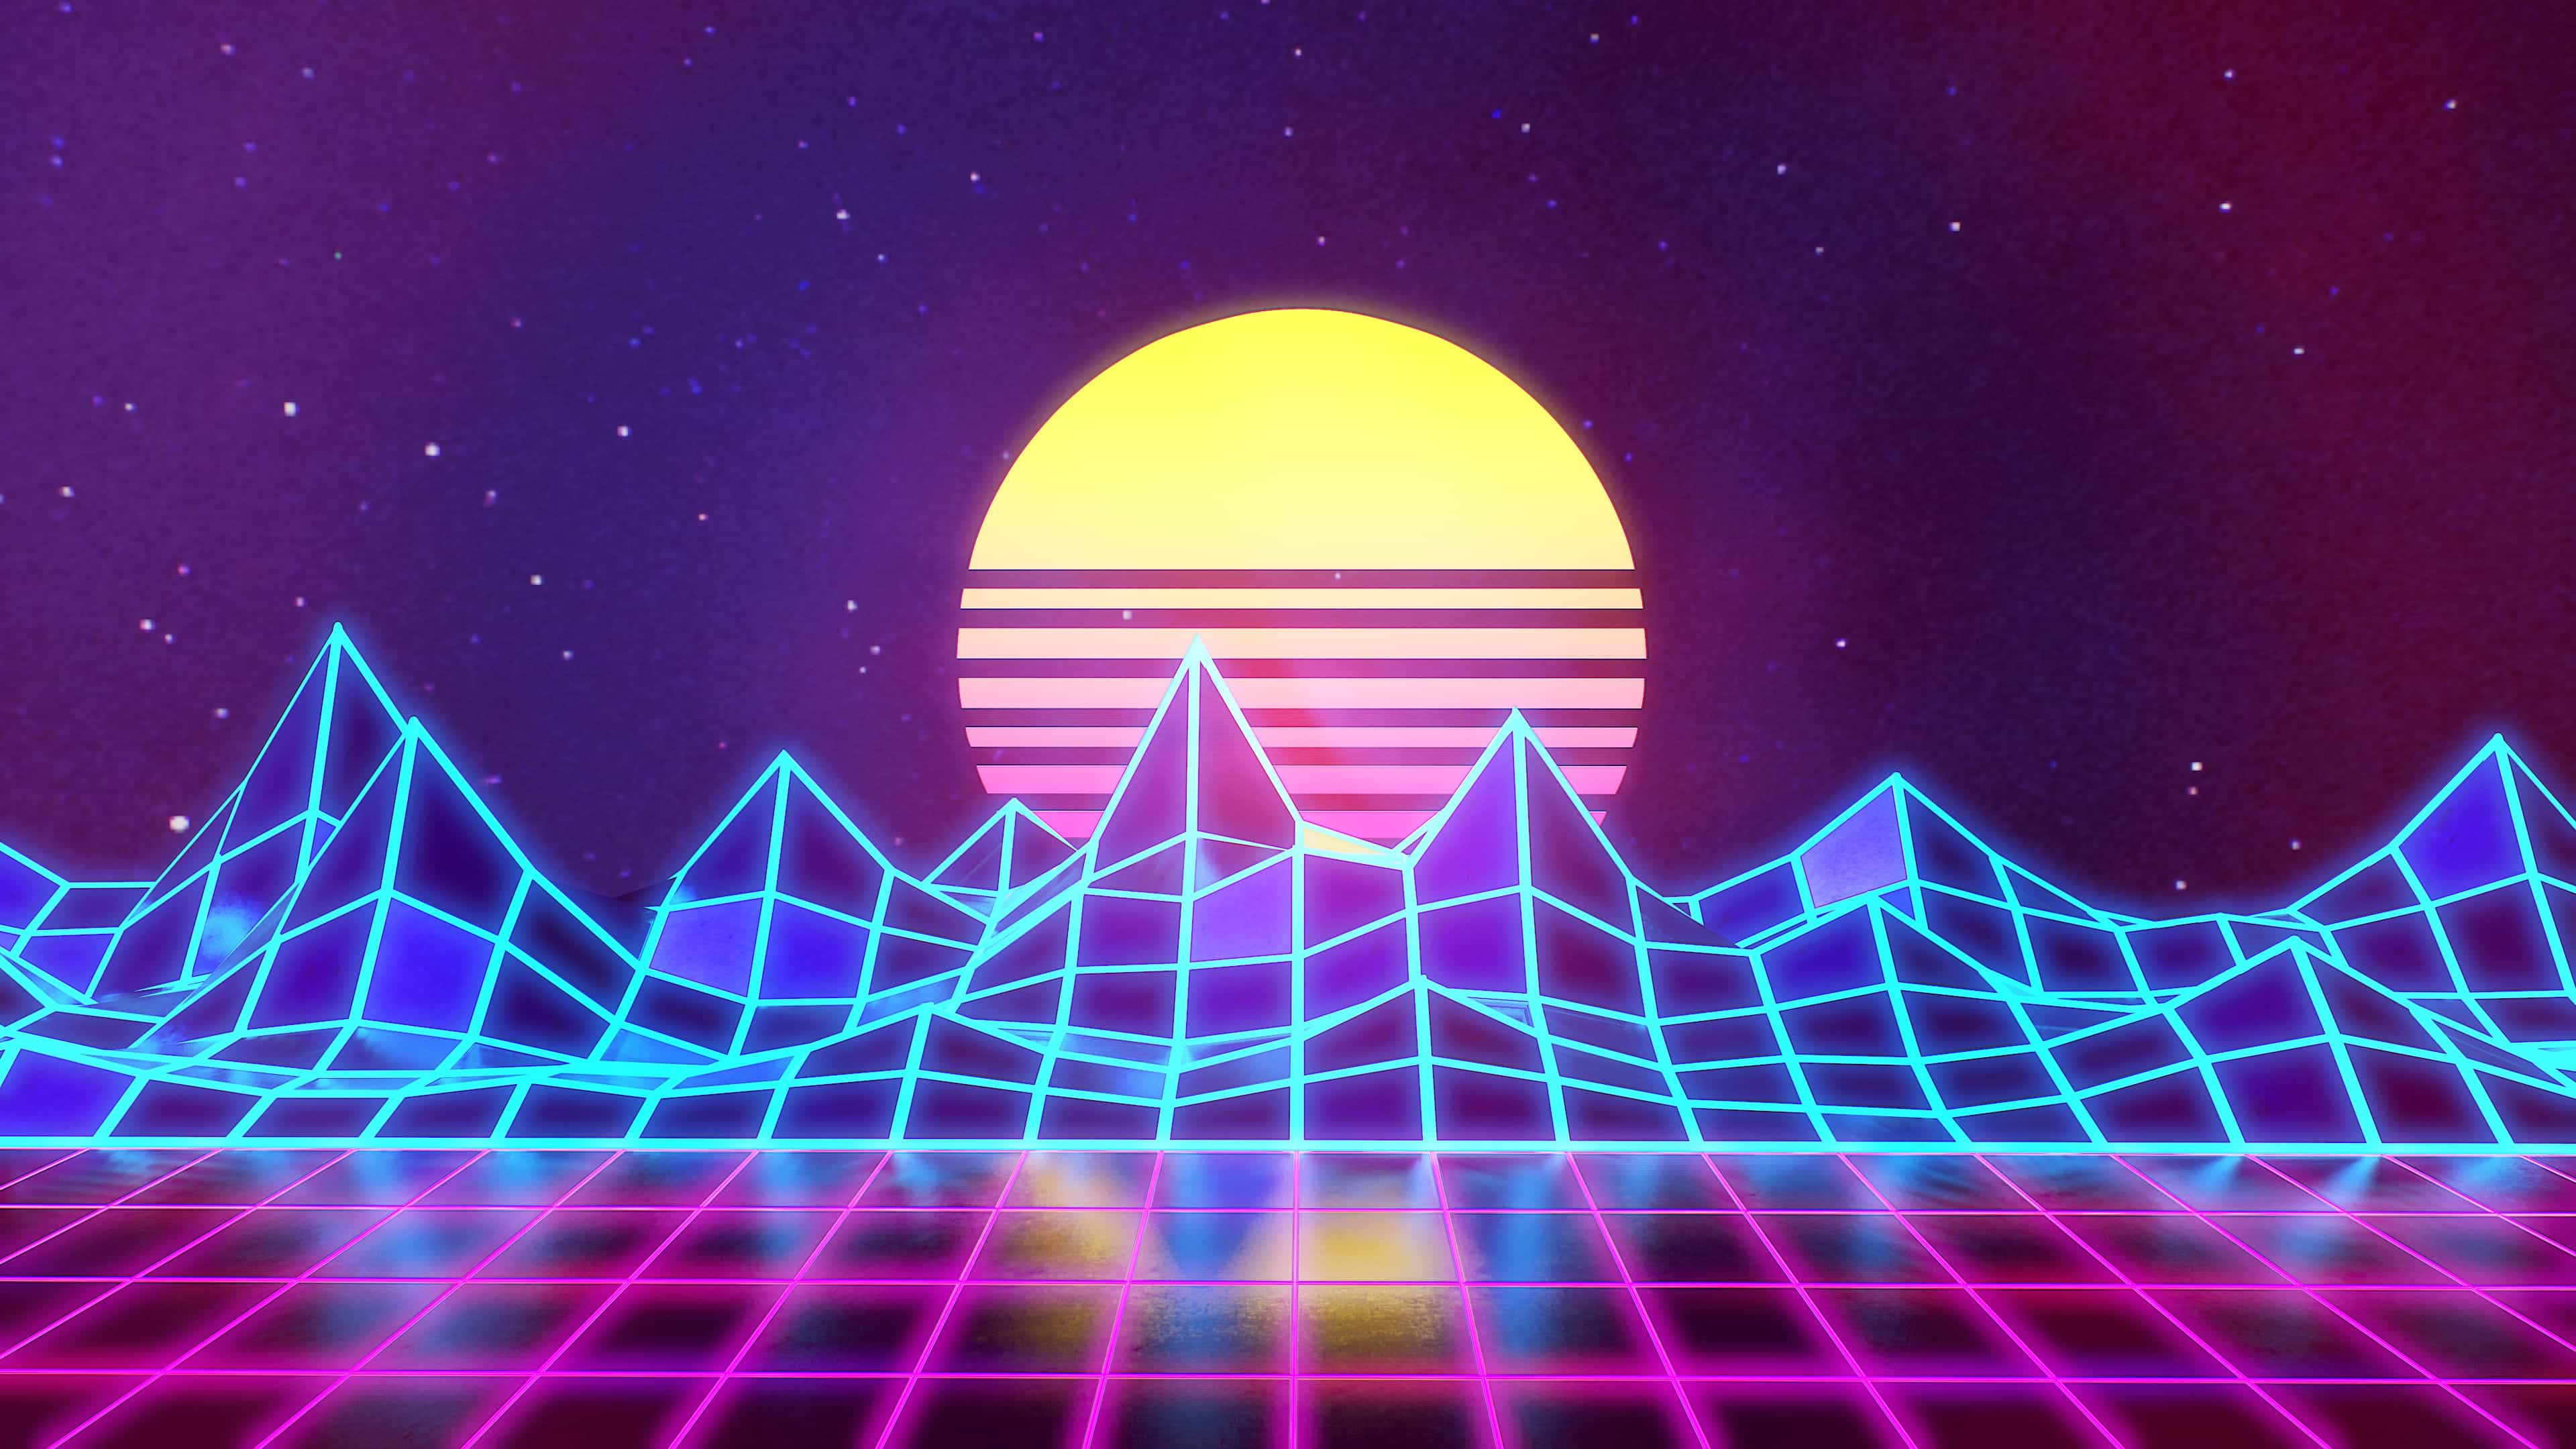 Electronic Music Wave Wallpaper, PC Electronic Music Wave